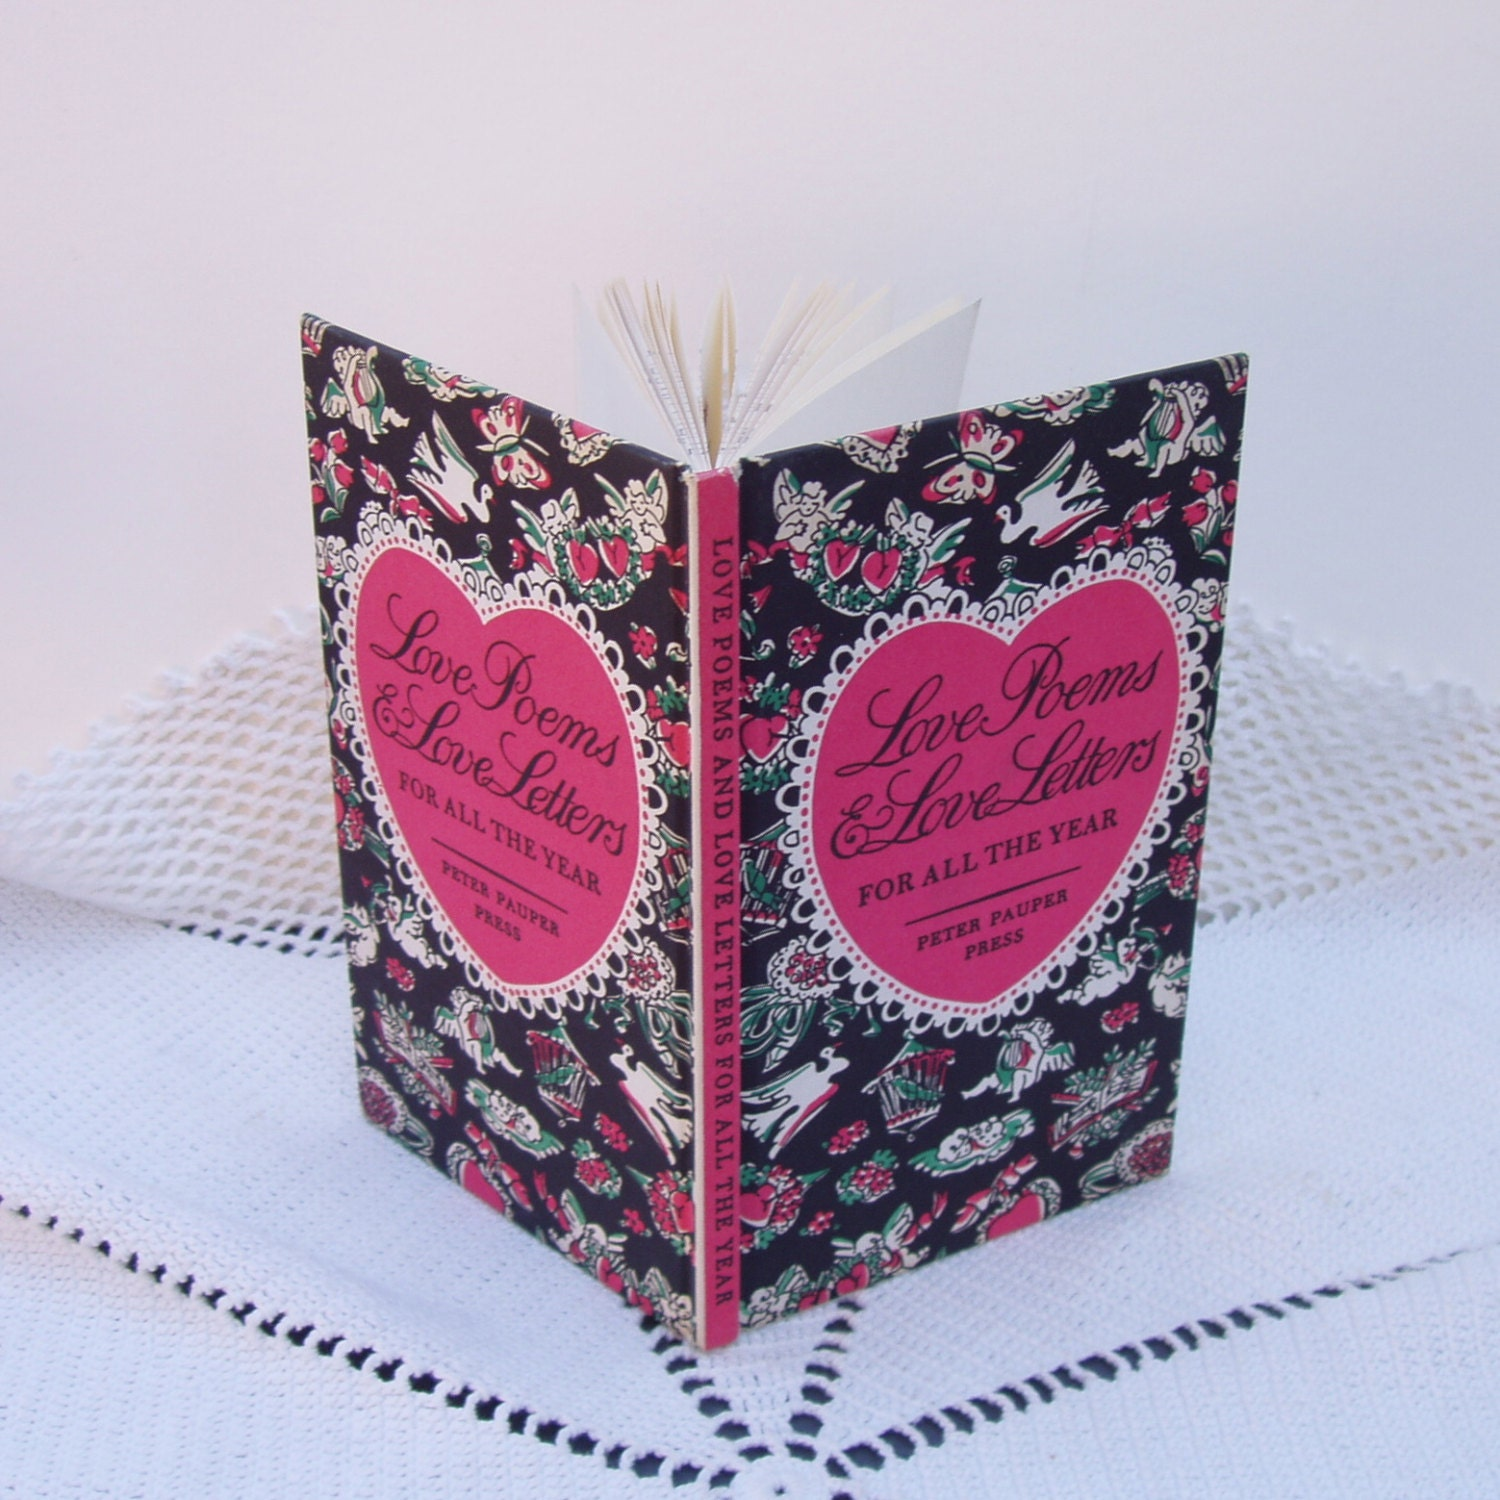 Vintage Gift Book . Love Poems & Love Letters For All The Year